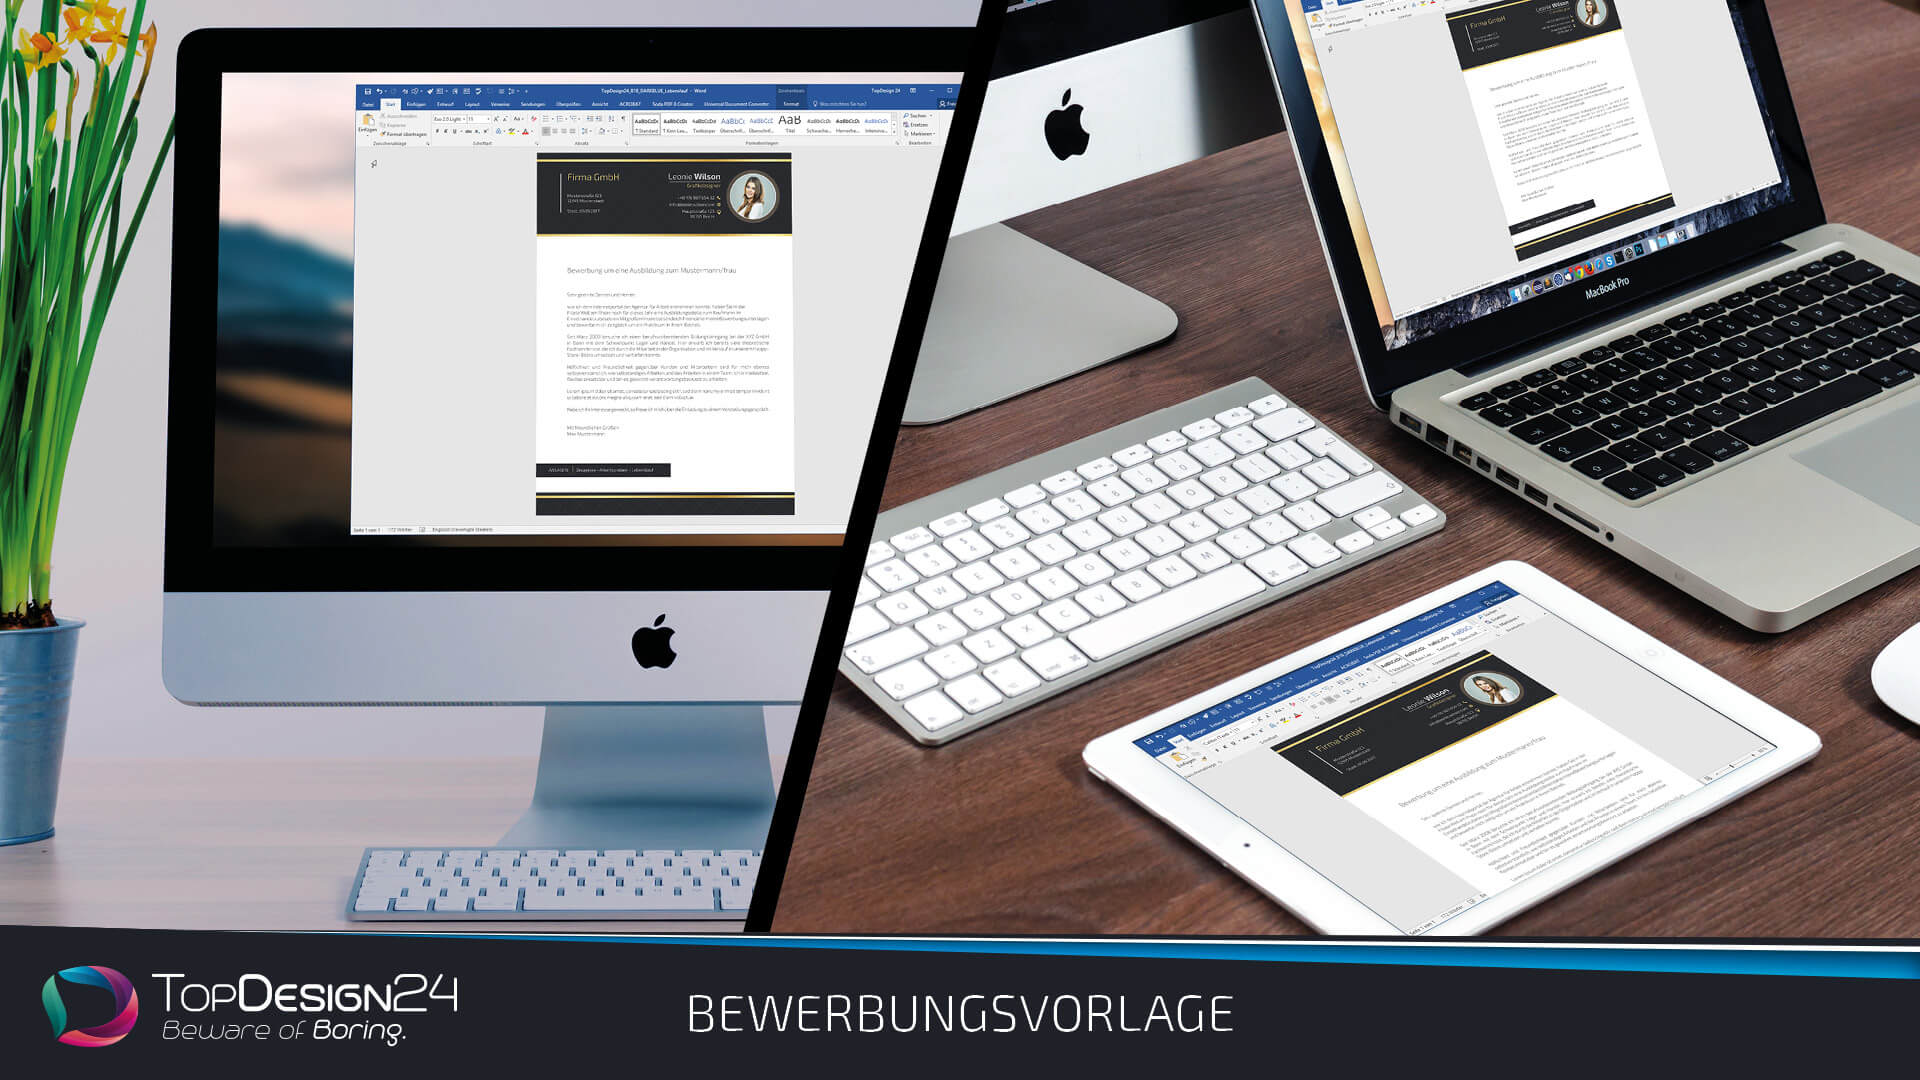 kreative-bewerbung word downloaden